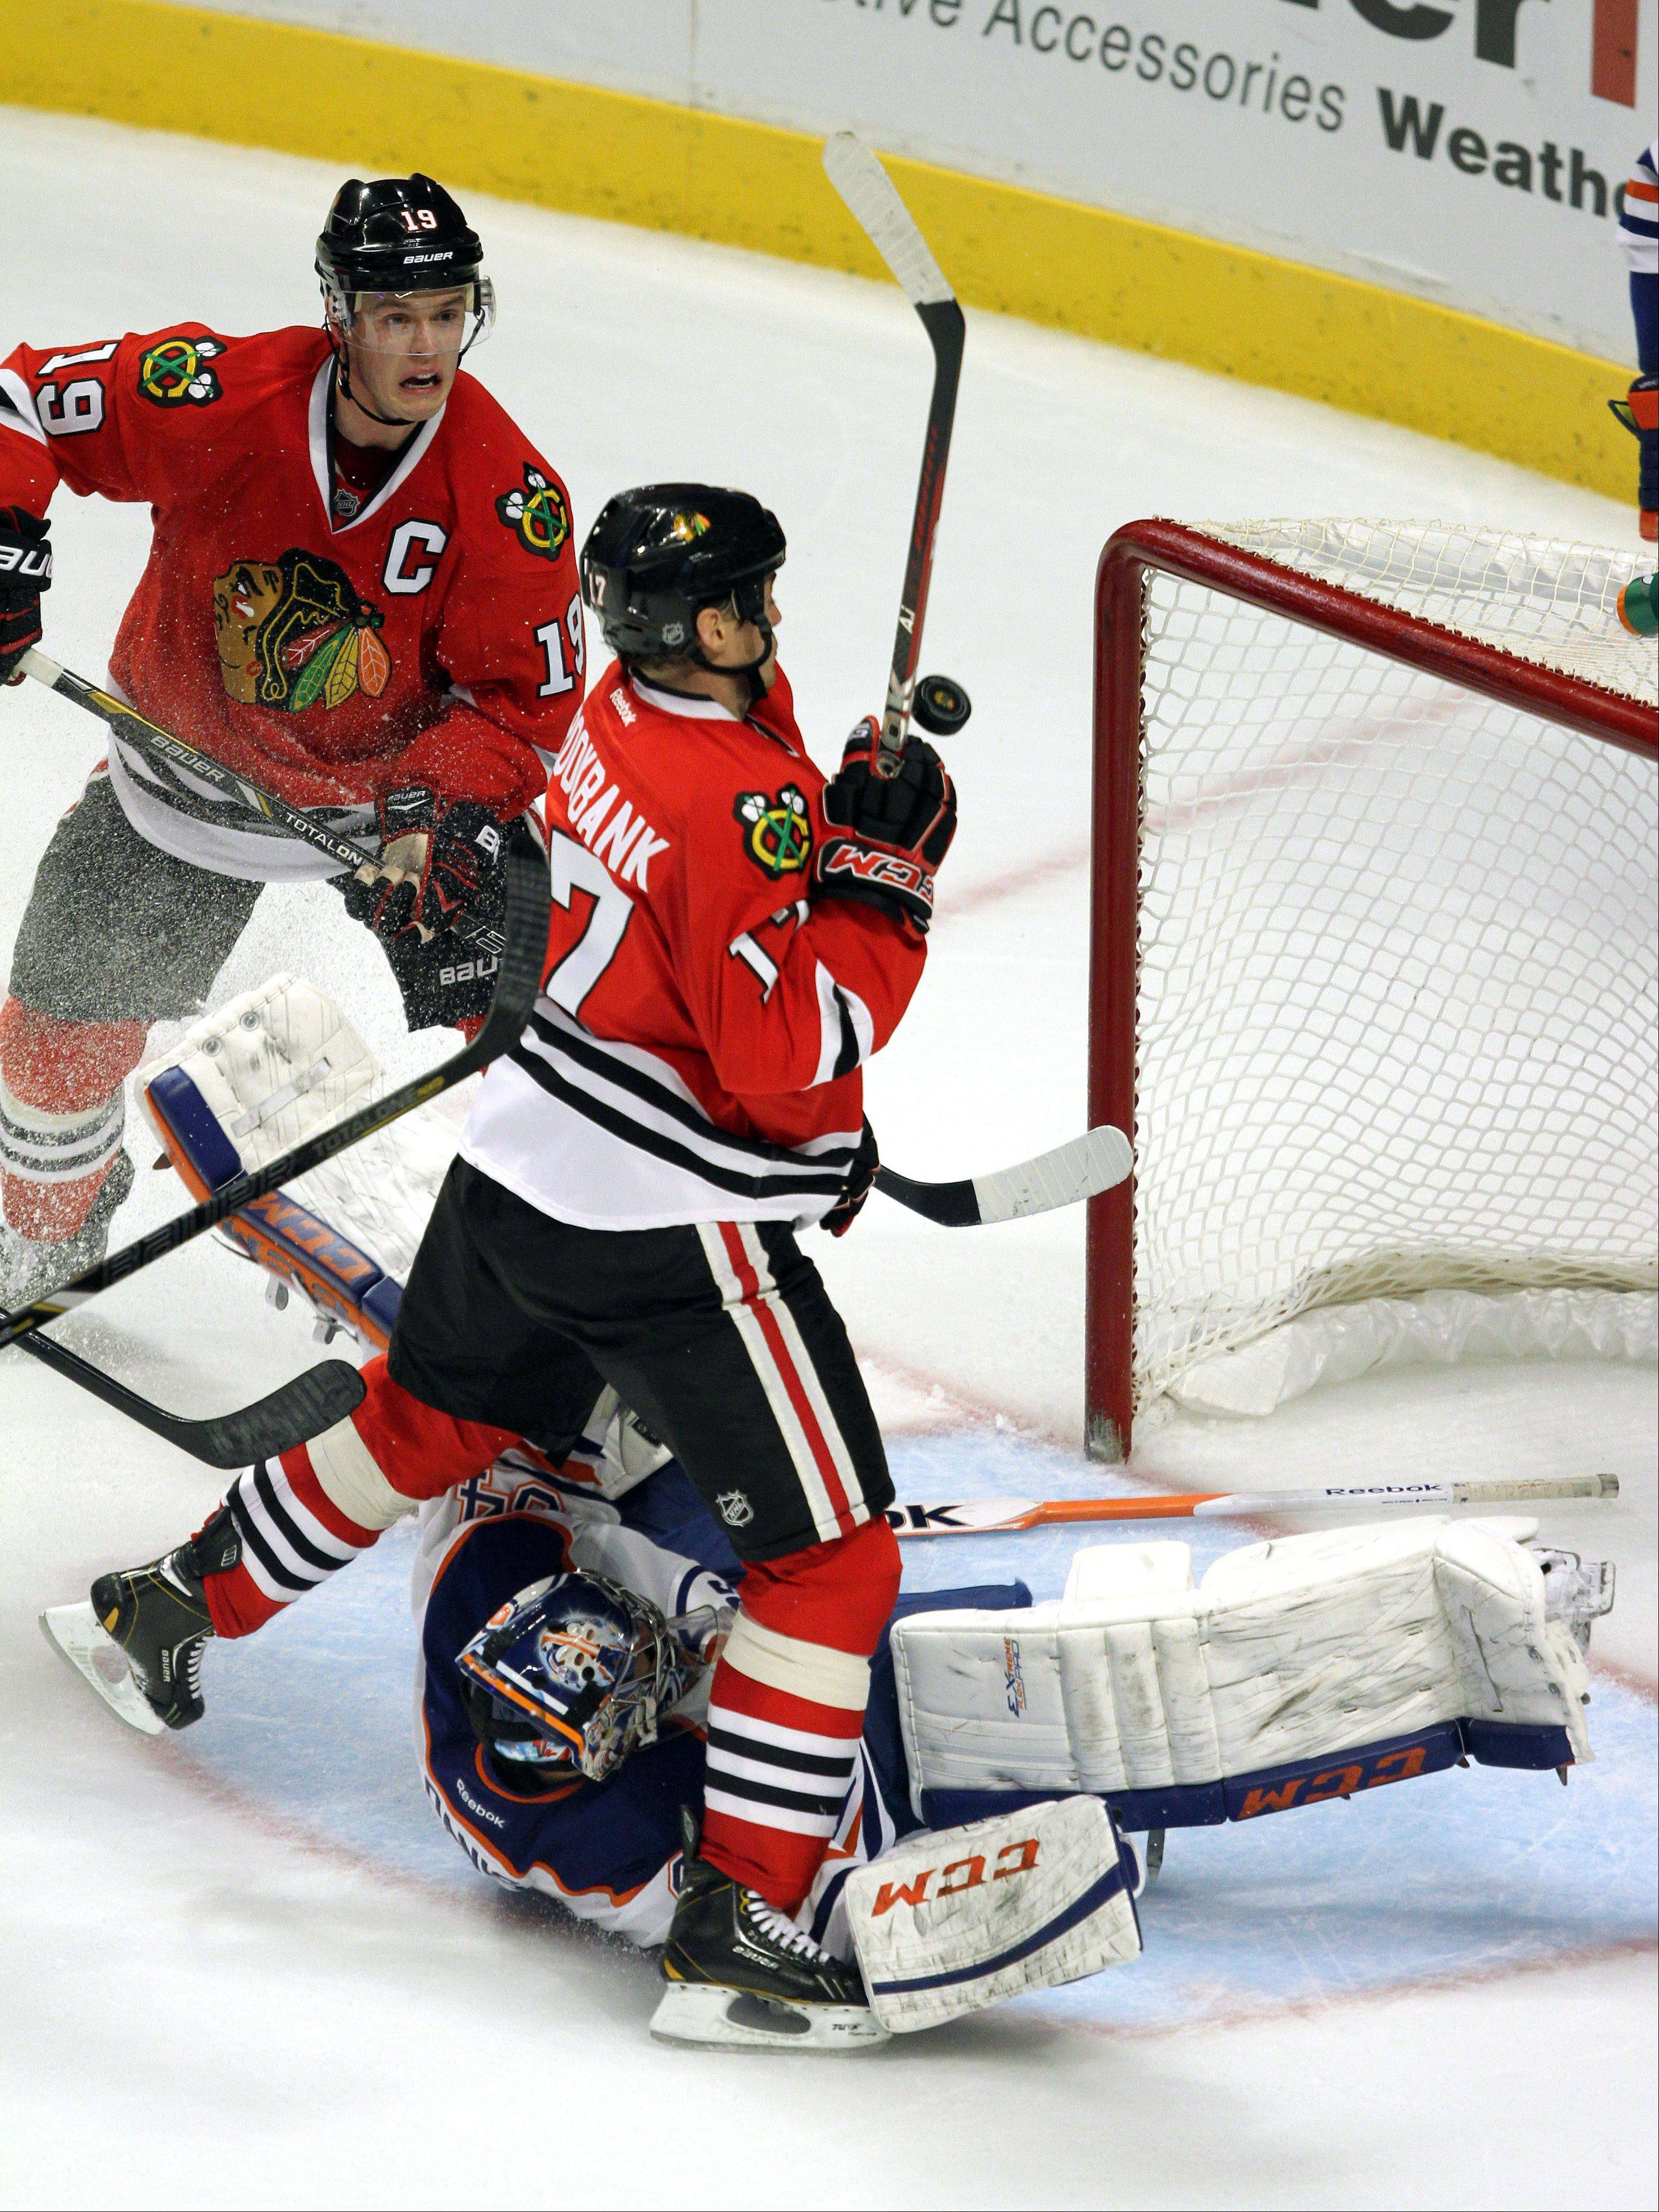 the puck bounces off Chicago Blackhawks defenseman Sheldon Brookbank's chest and into the net in the 2nd period during their game Sunday night at the United Center in Chicago.